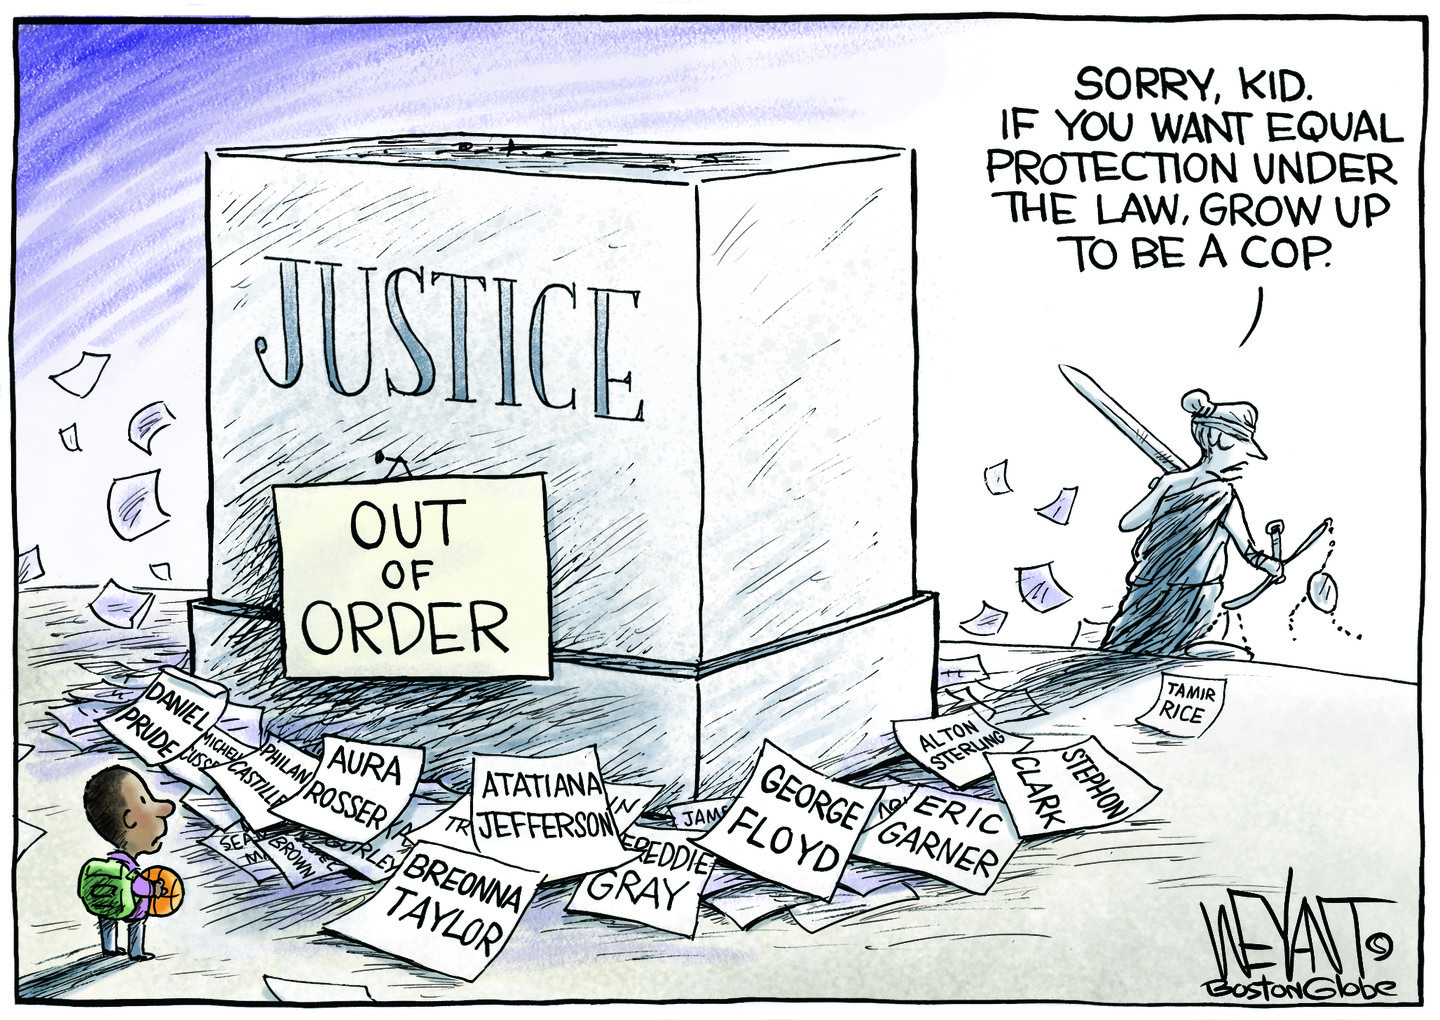 Broken justice system disempowers the poor and communities of color.